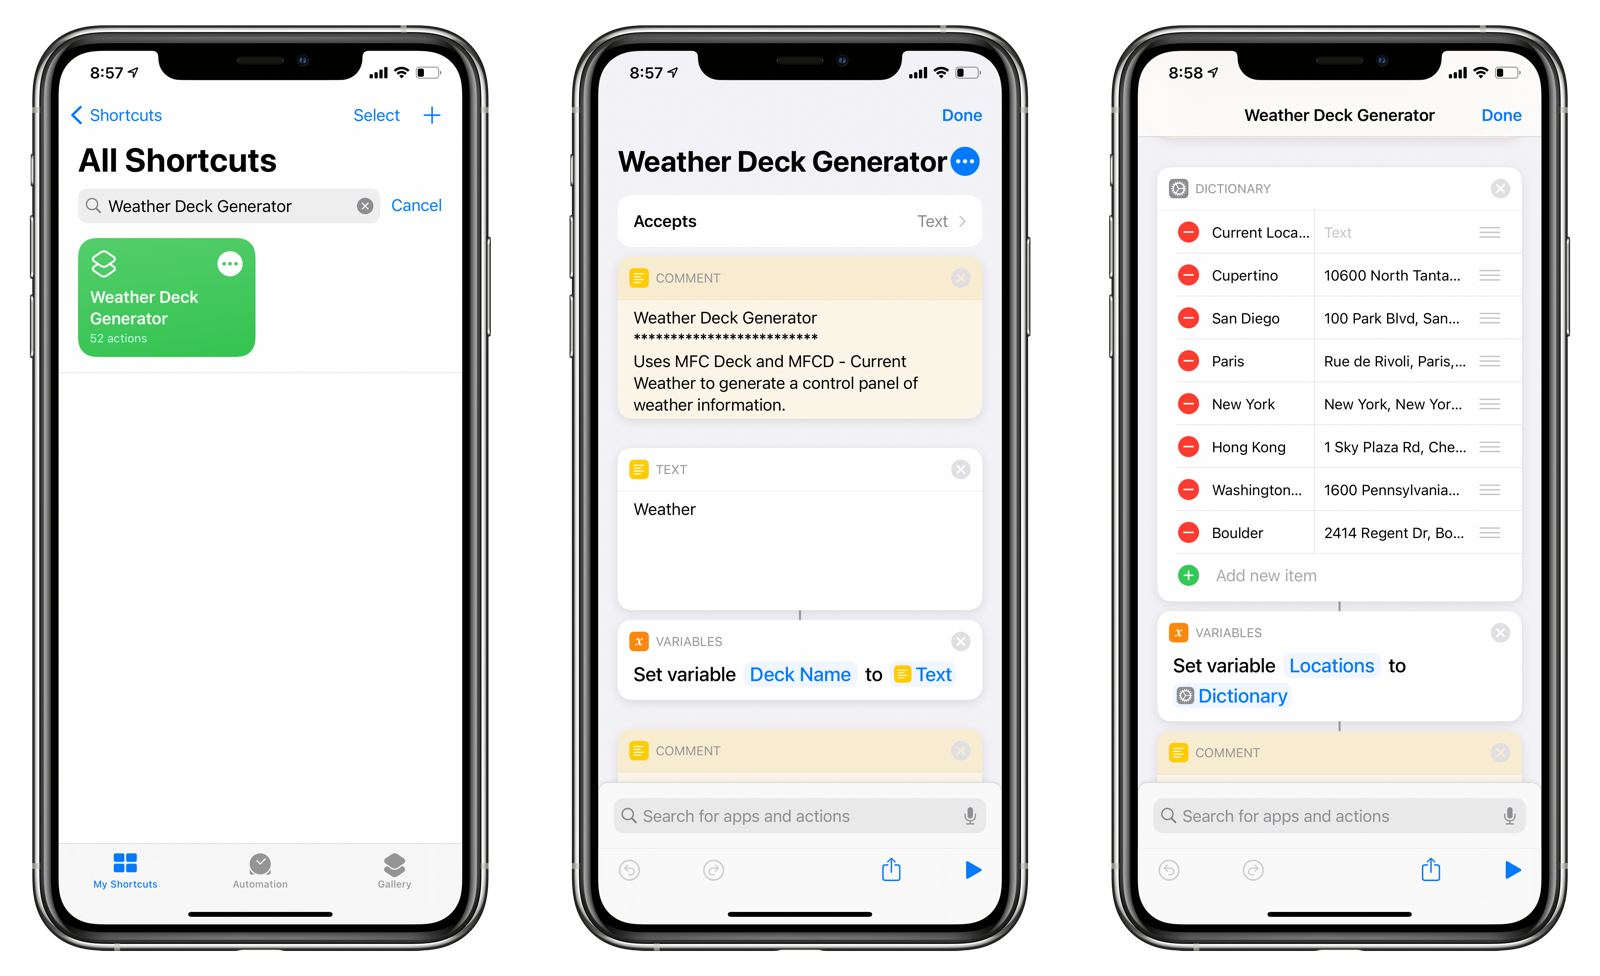 Configuring the Weather Deck Generator shortcut